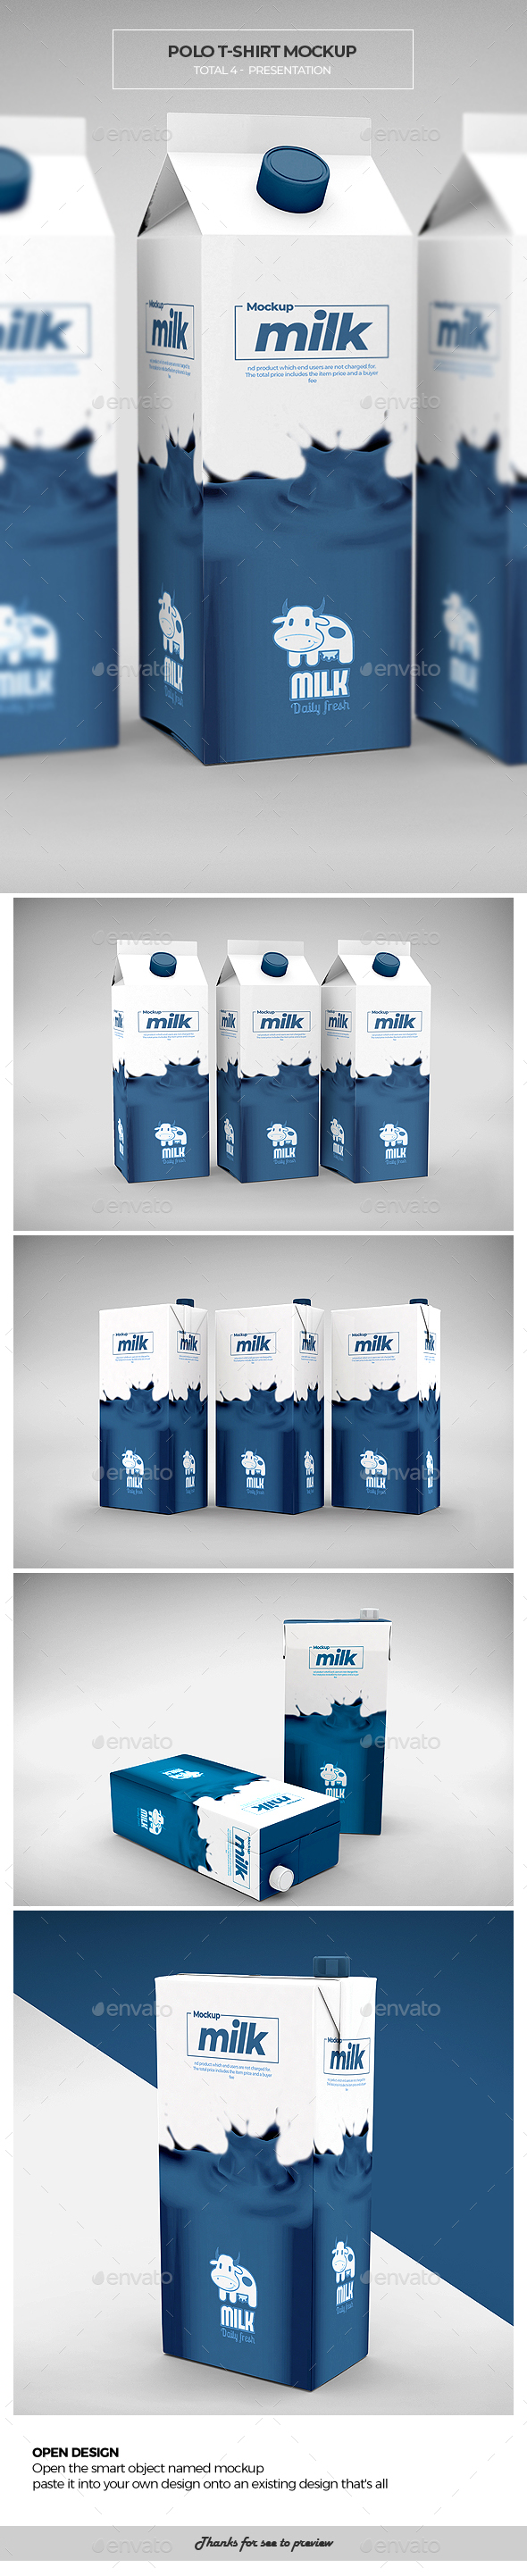 Milk Mock-up - Food and Drink Packaging